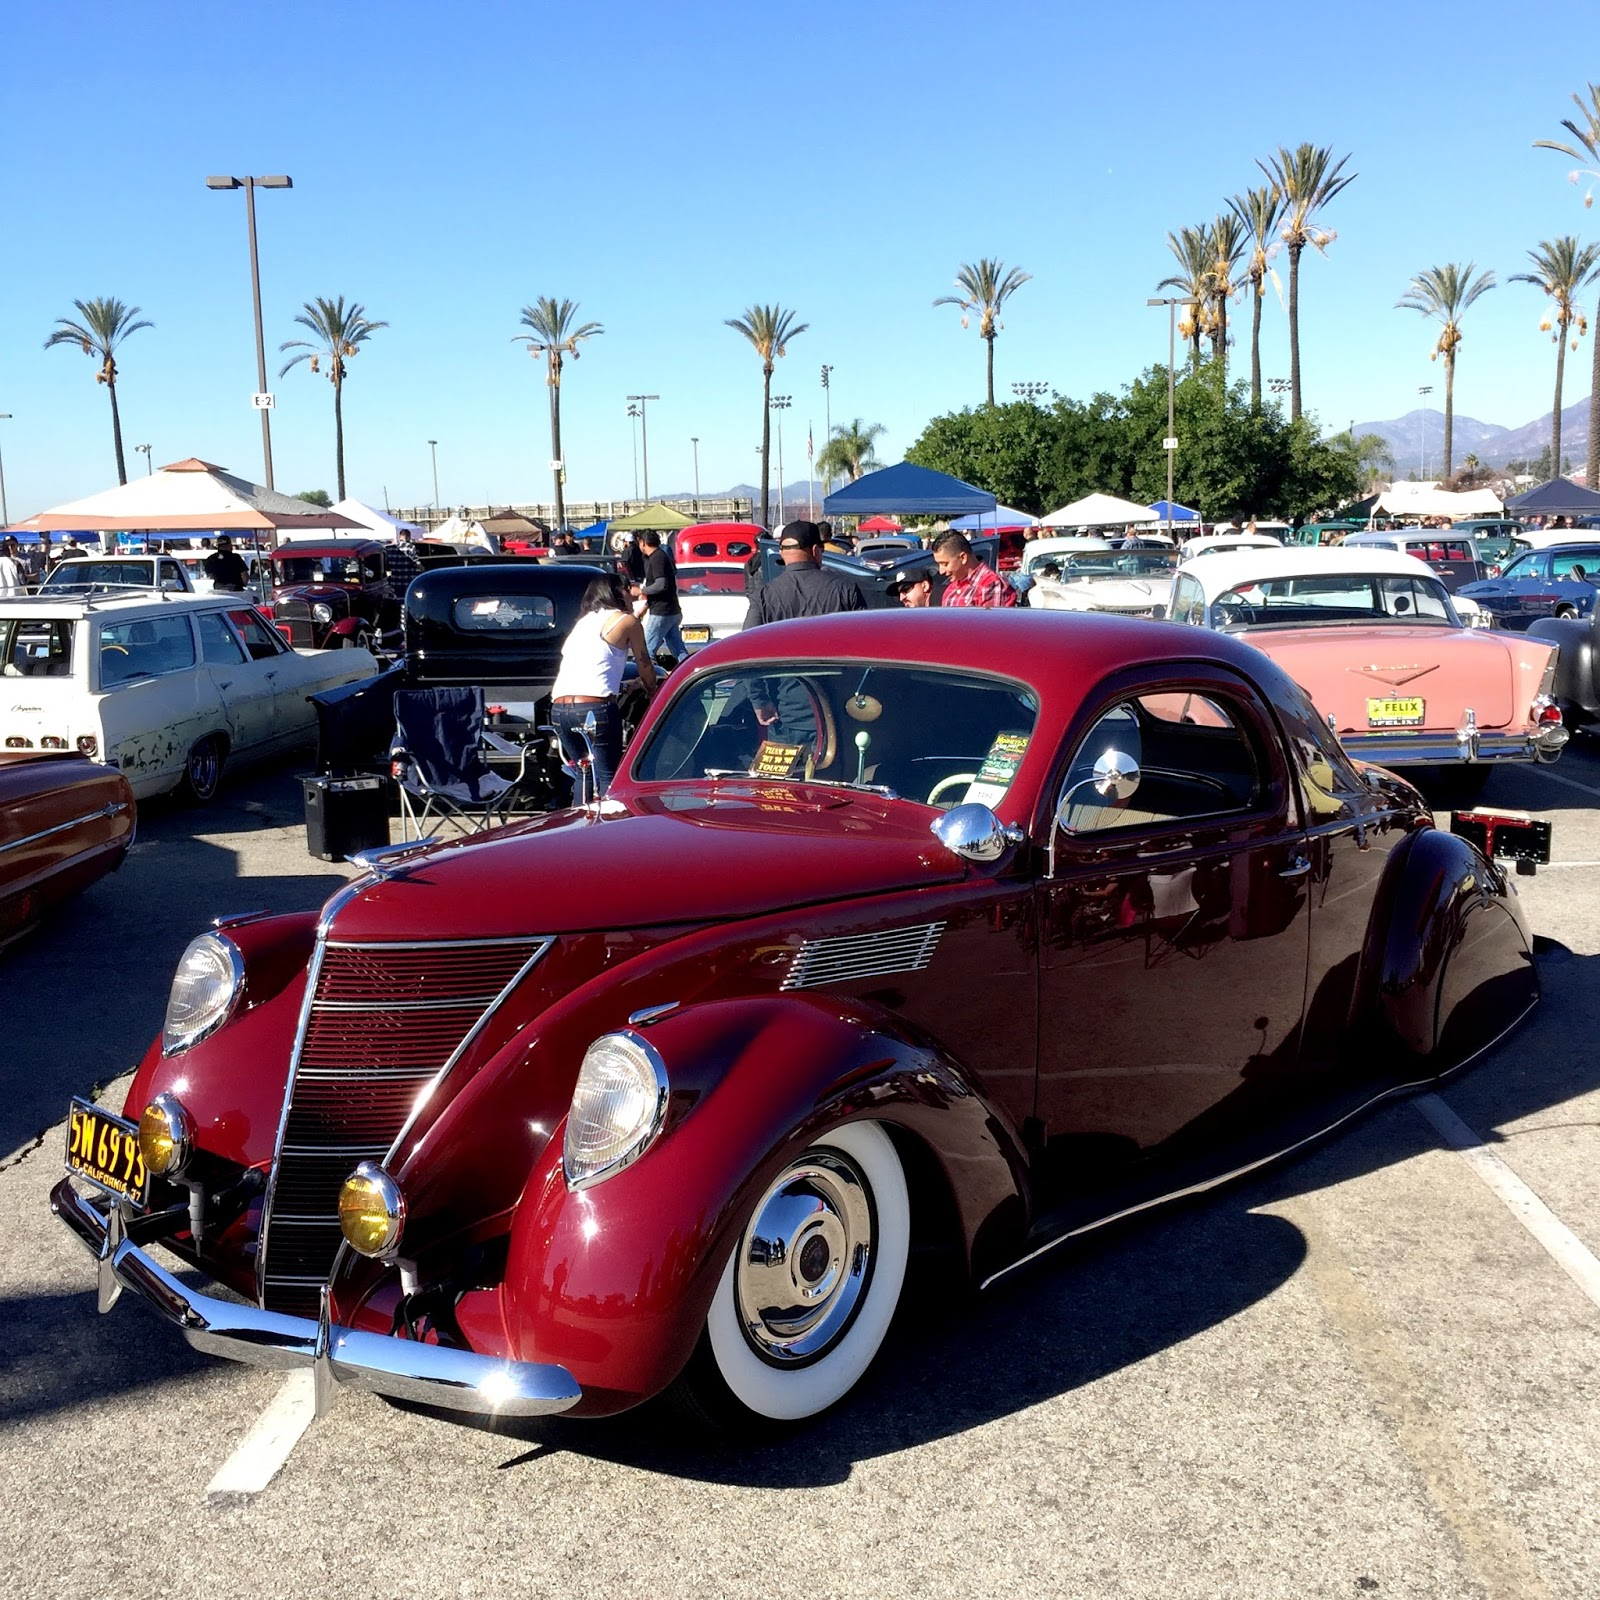 Covering Classic Cars Mooneyes XMas Party Car Show Drag Race - Bay area car shows this weekend